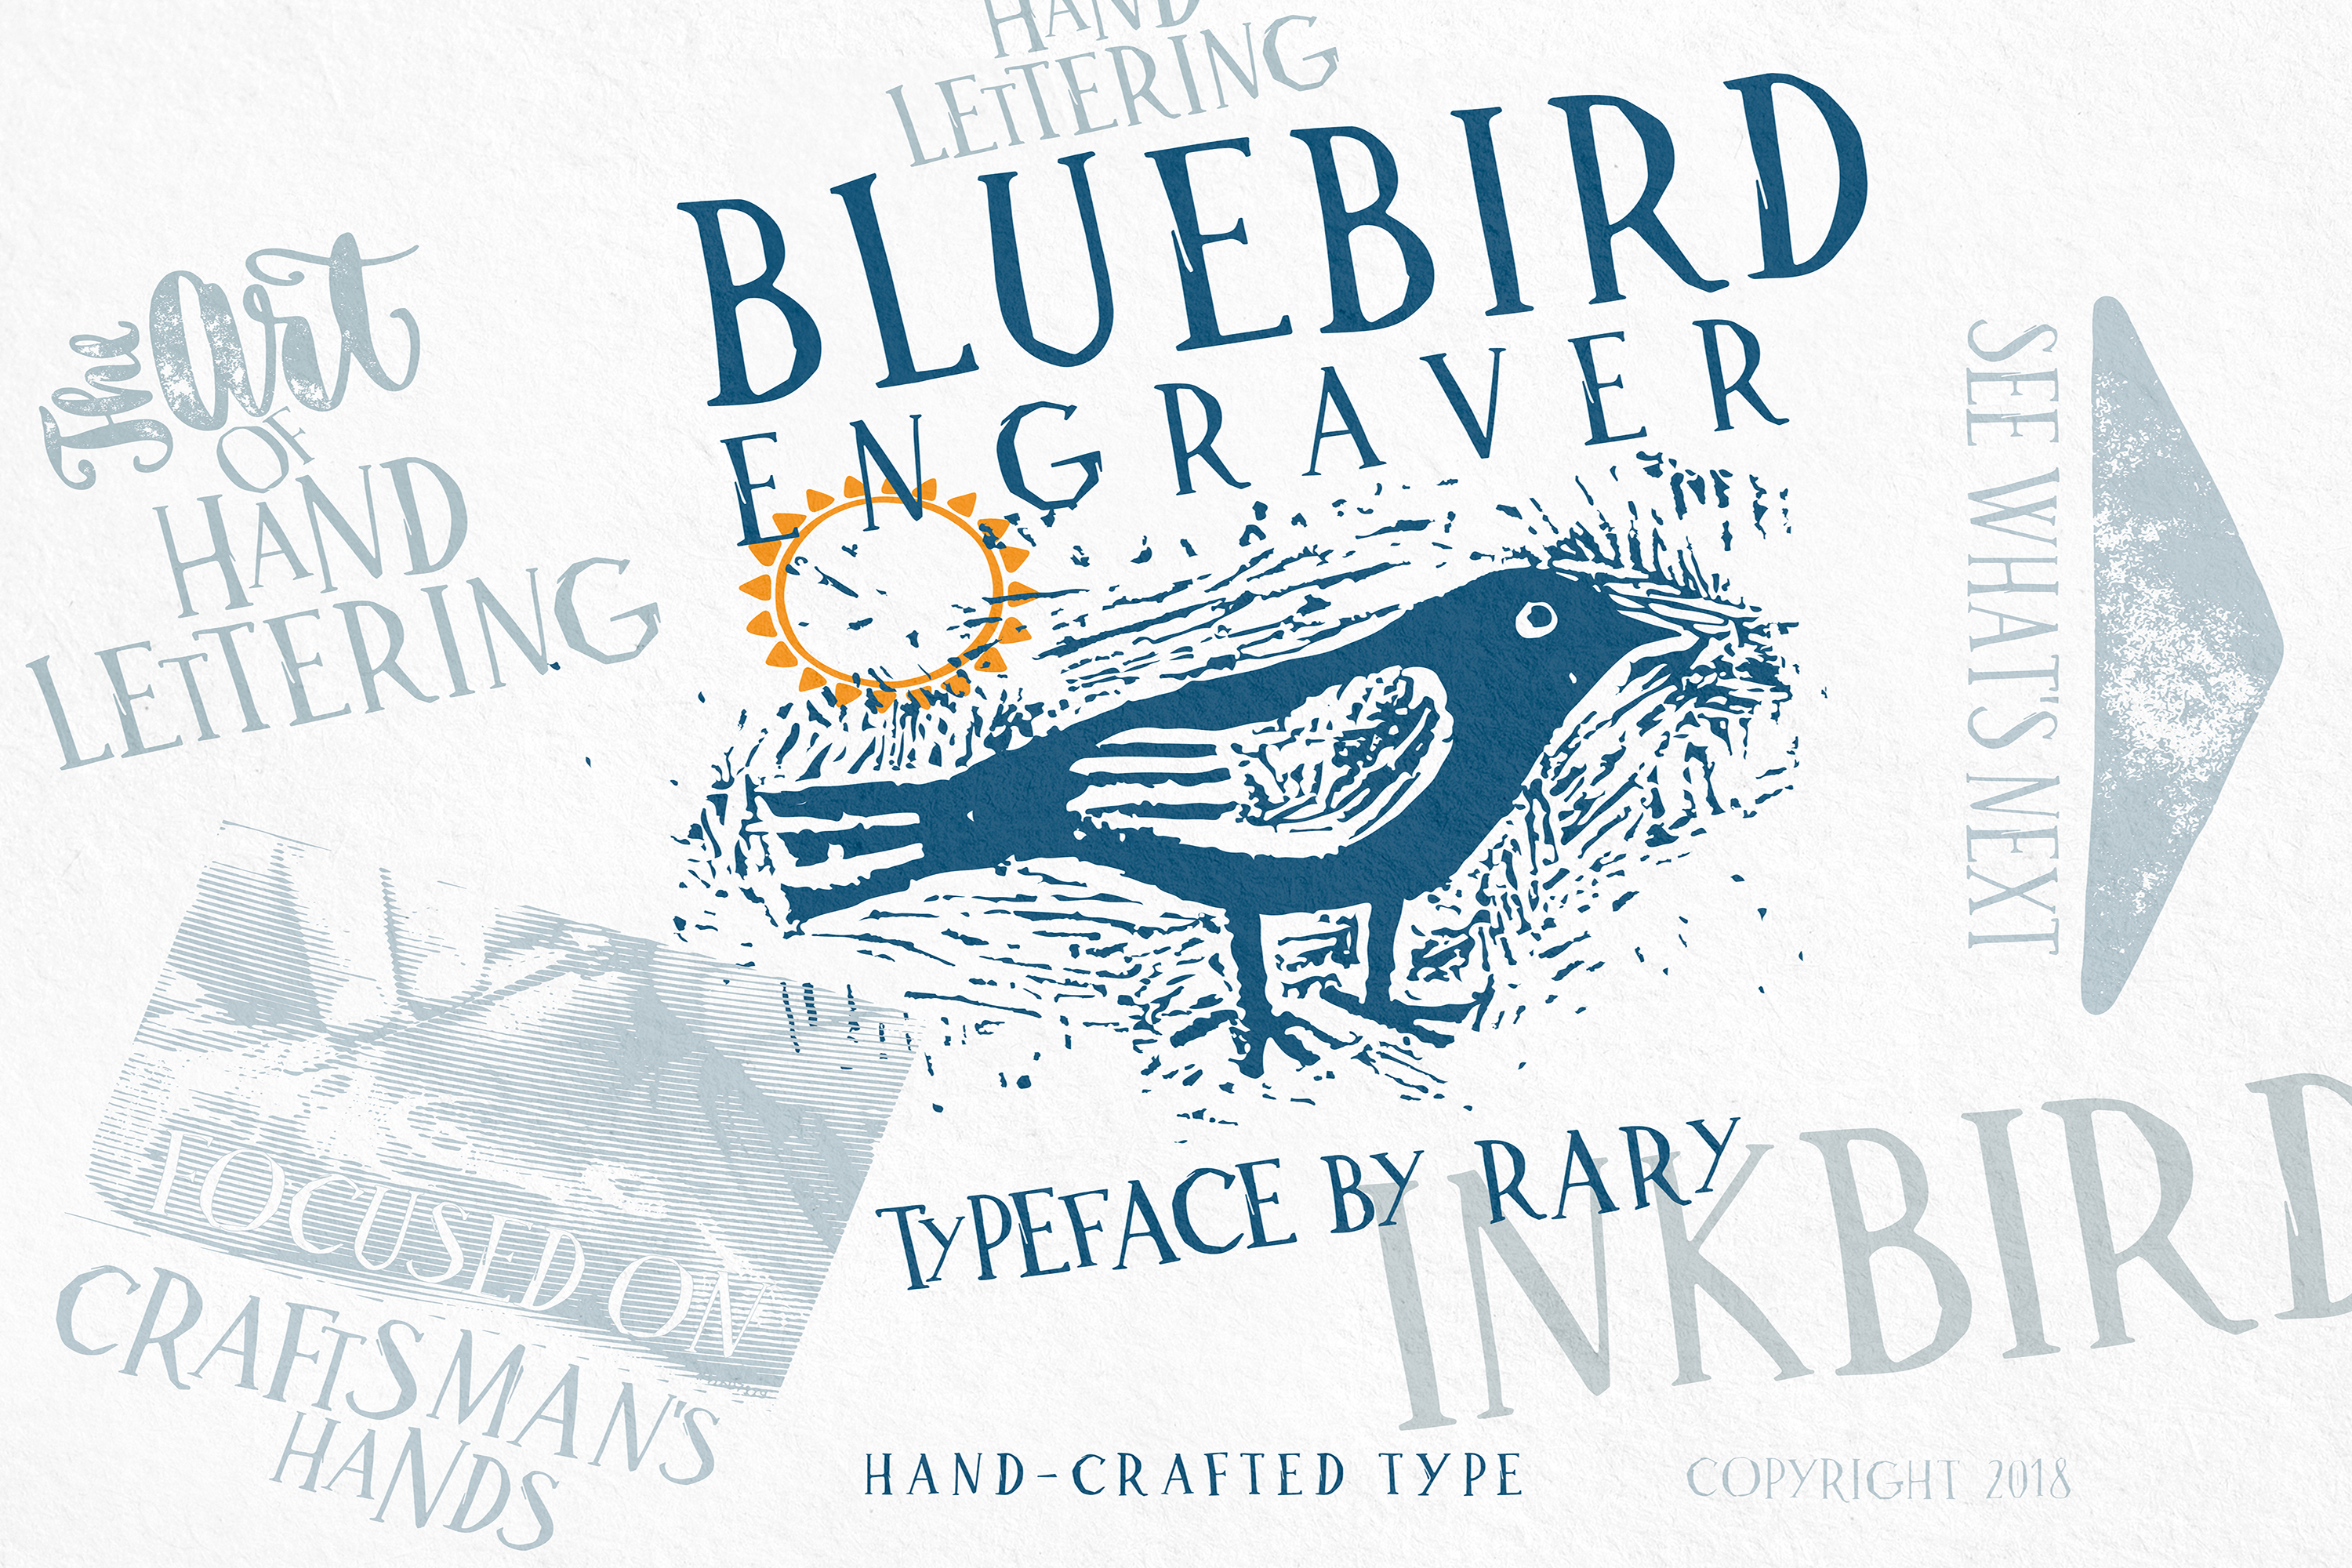 Bluebird engraver Font | An artisan hand-made stamp type. example image 2